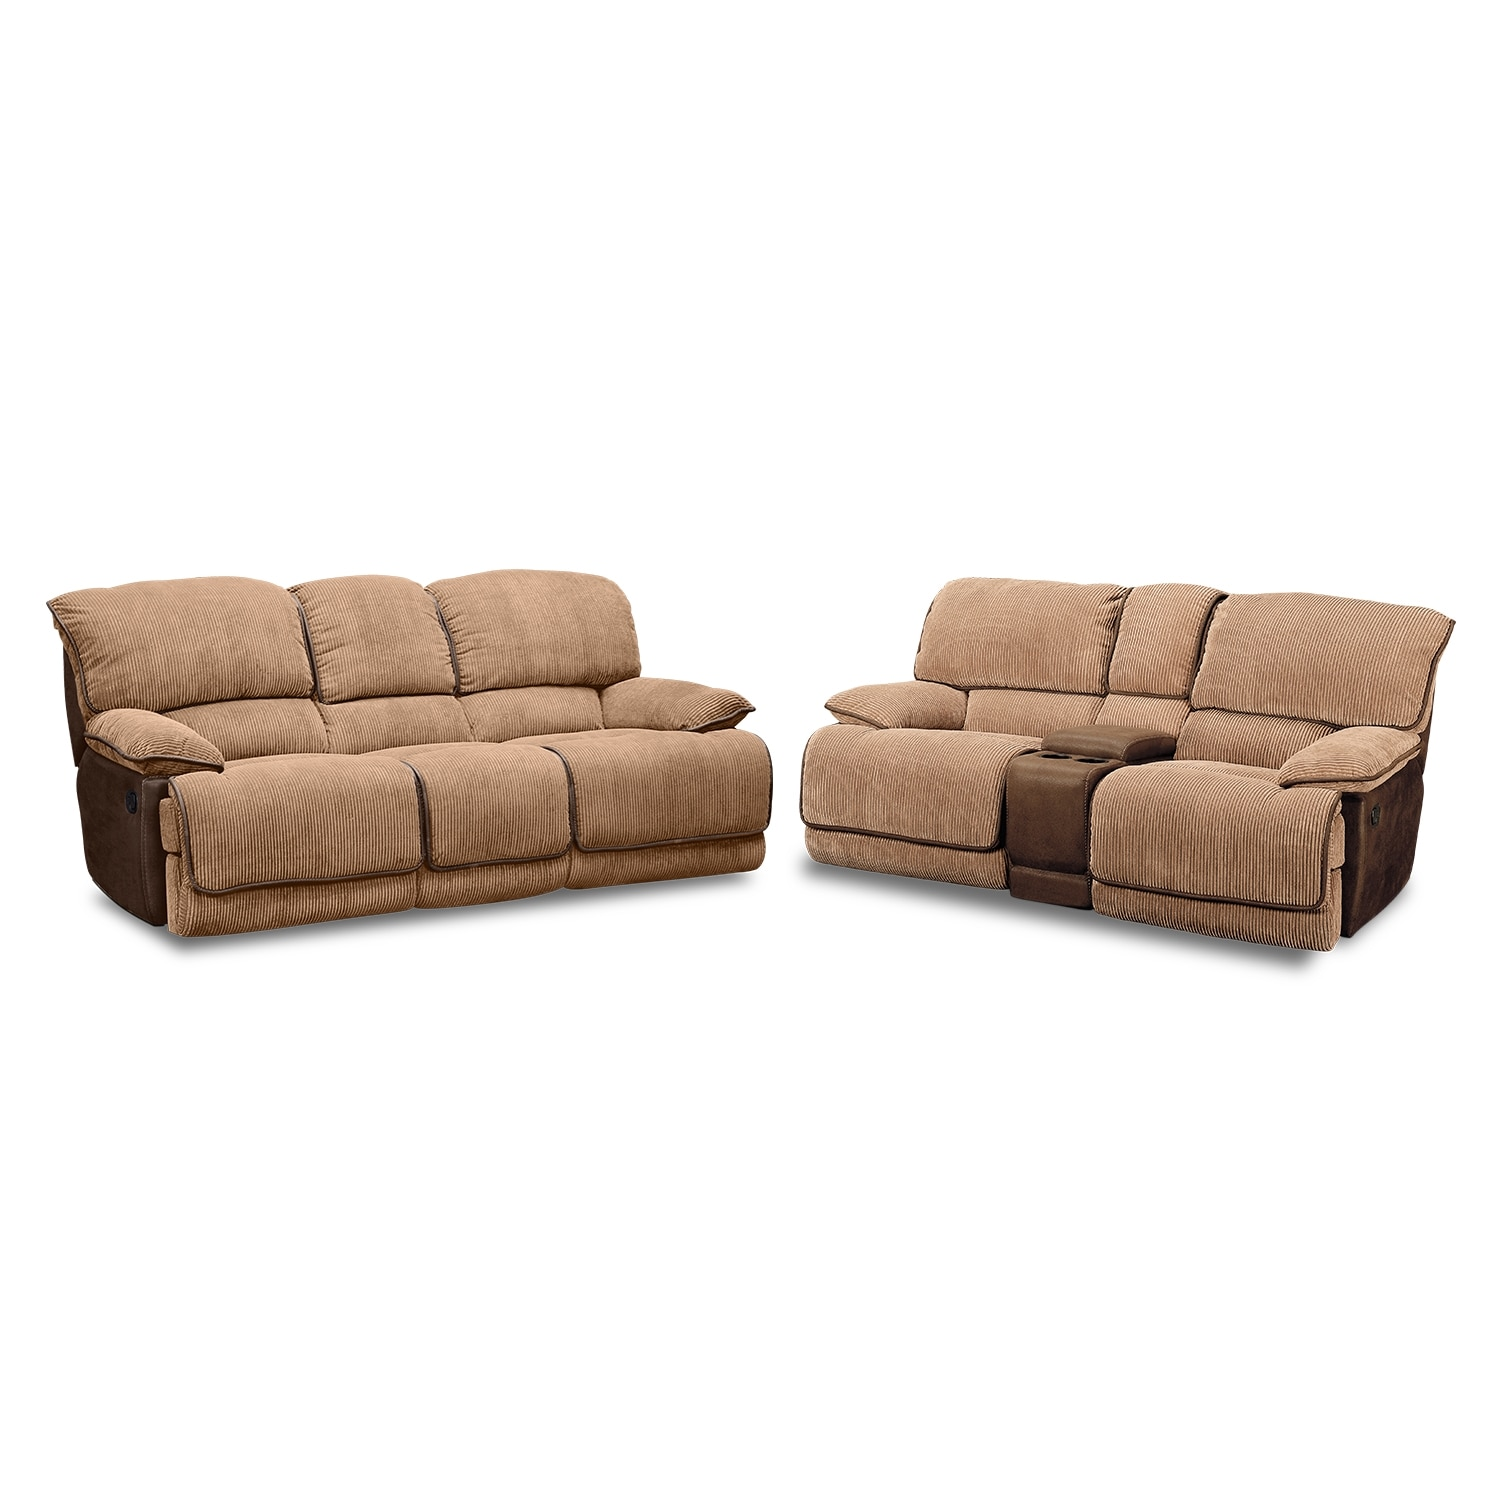 Laguna 2 Pc. Reclining Living Room